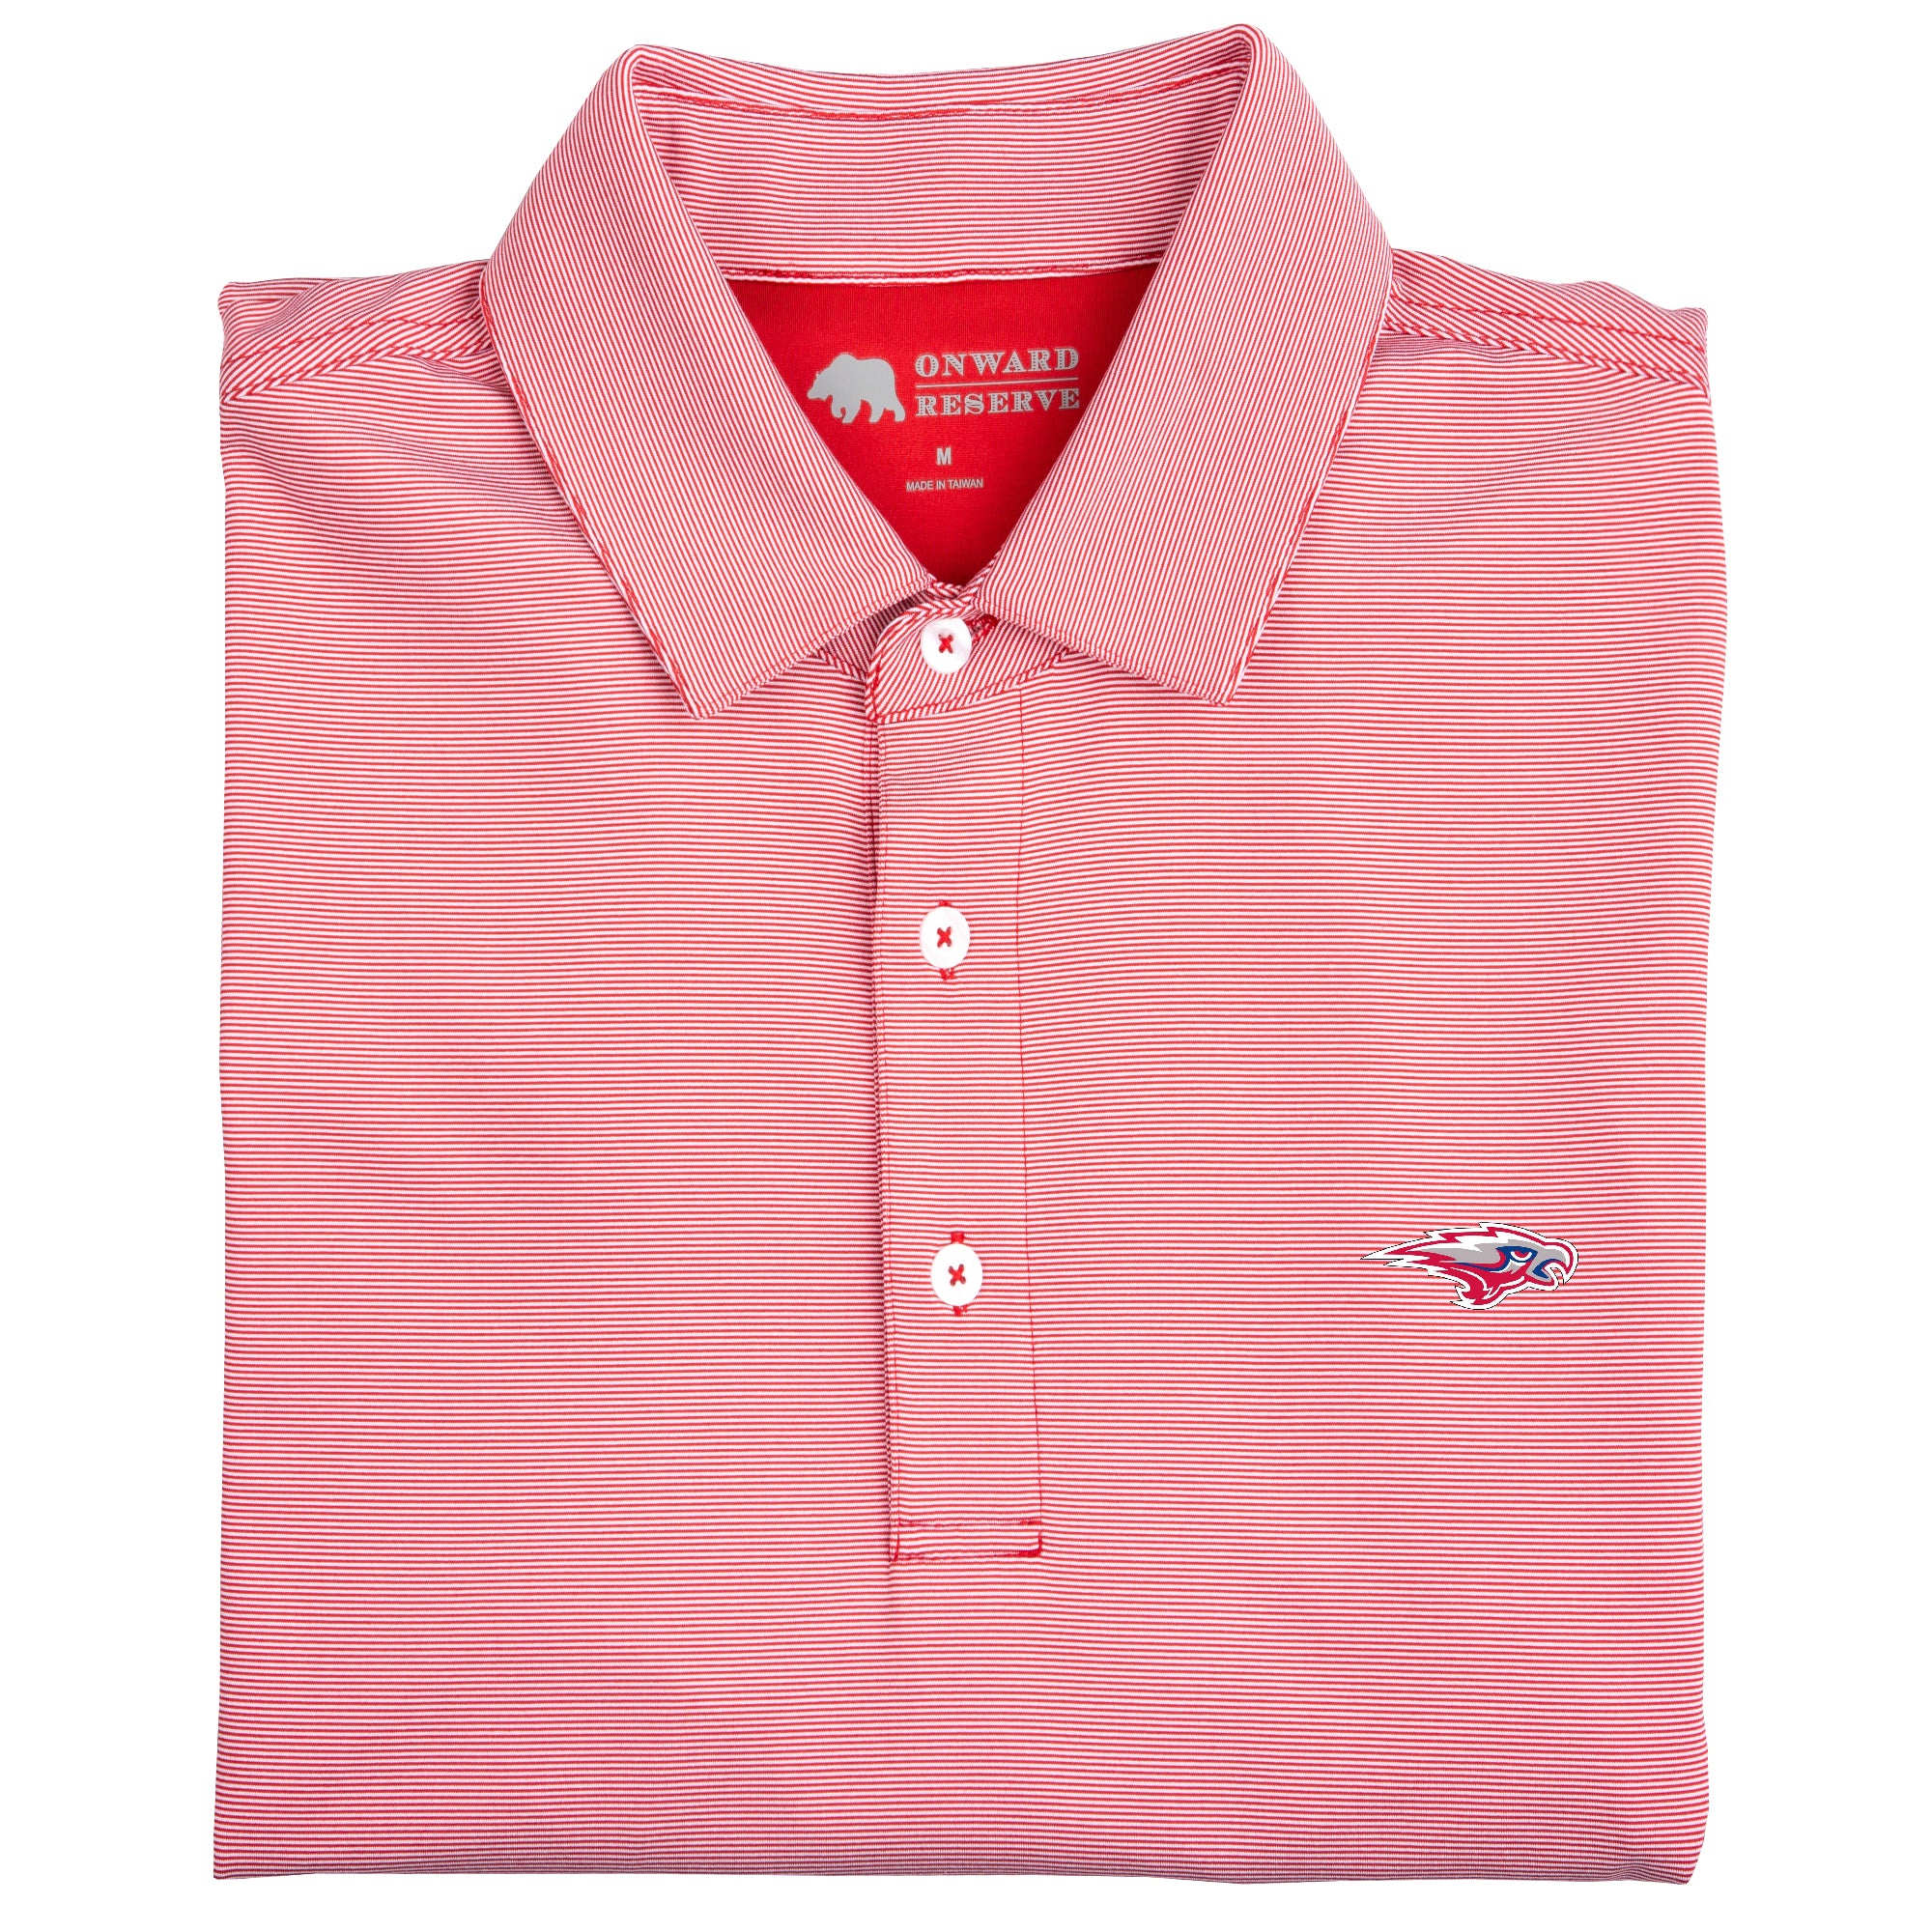 Hammond School Hairline Stripe Performance Polo - OnwardReserve